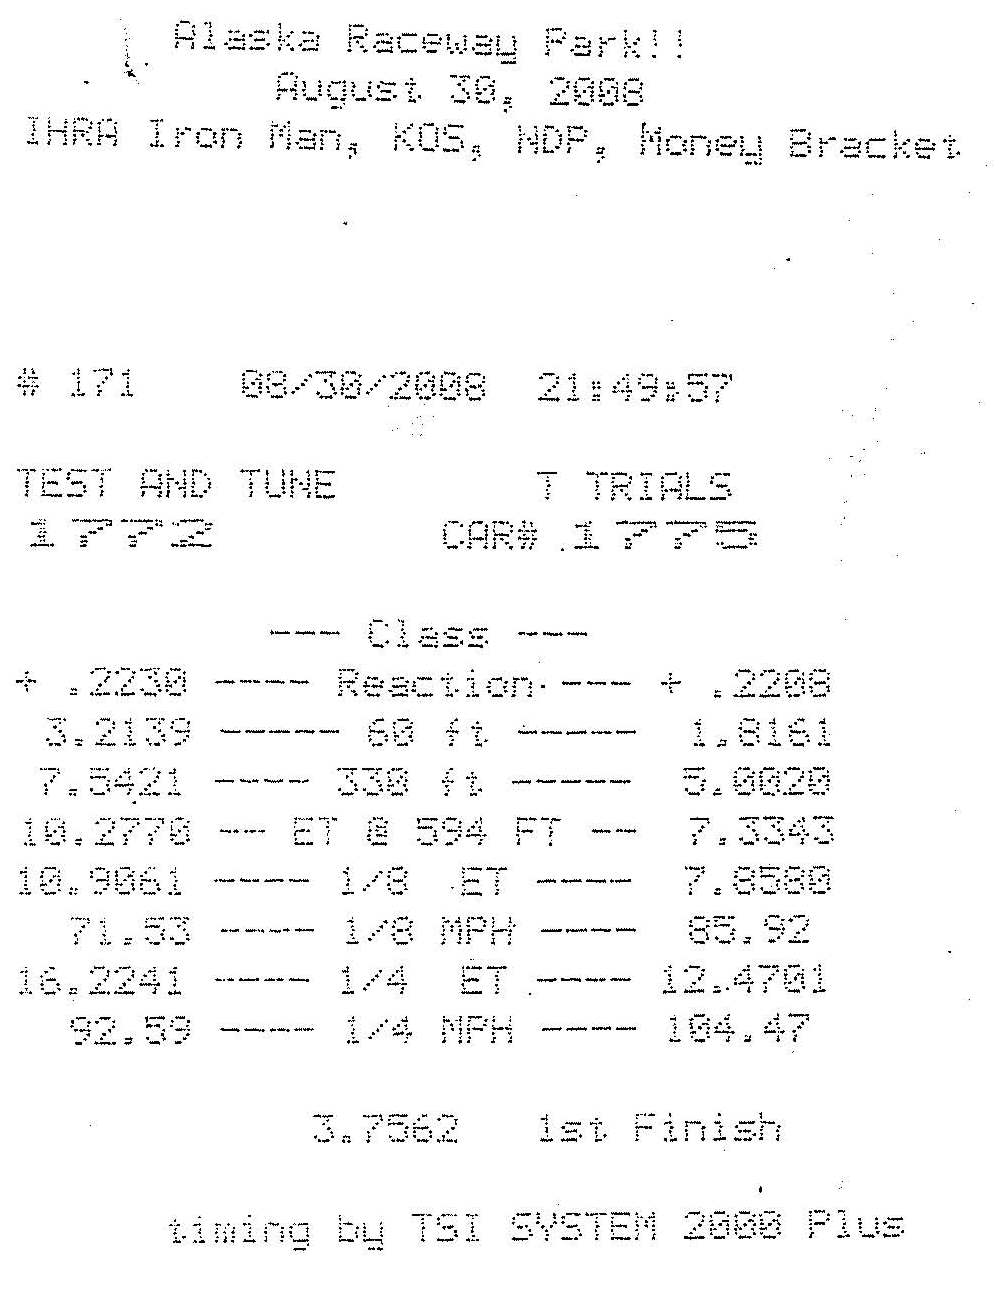 1978  Ford Pinto Electric Timeslip Scan